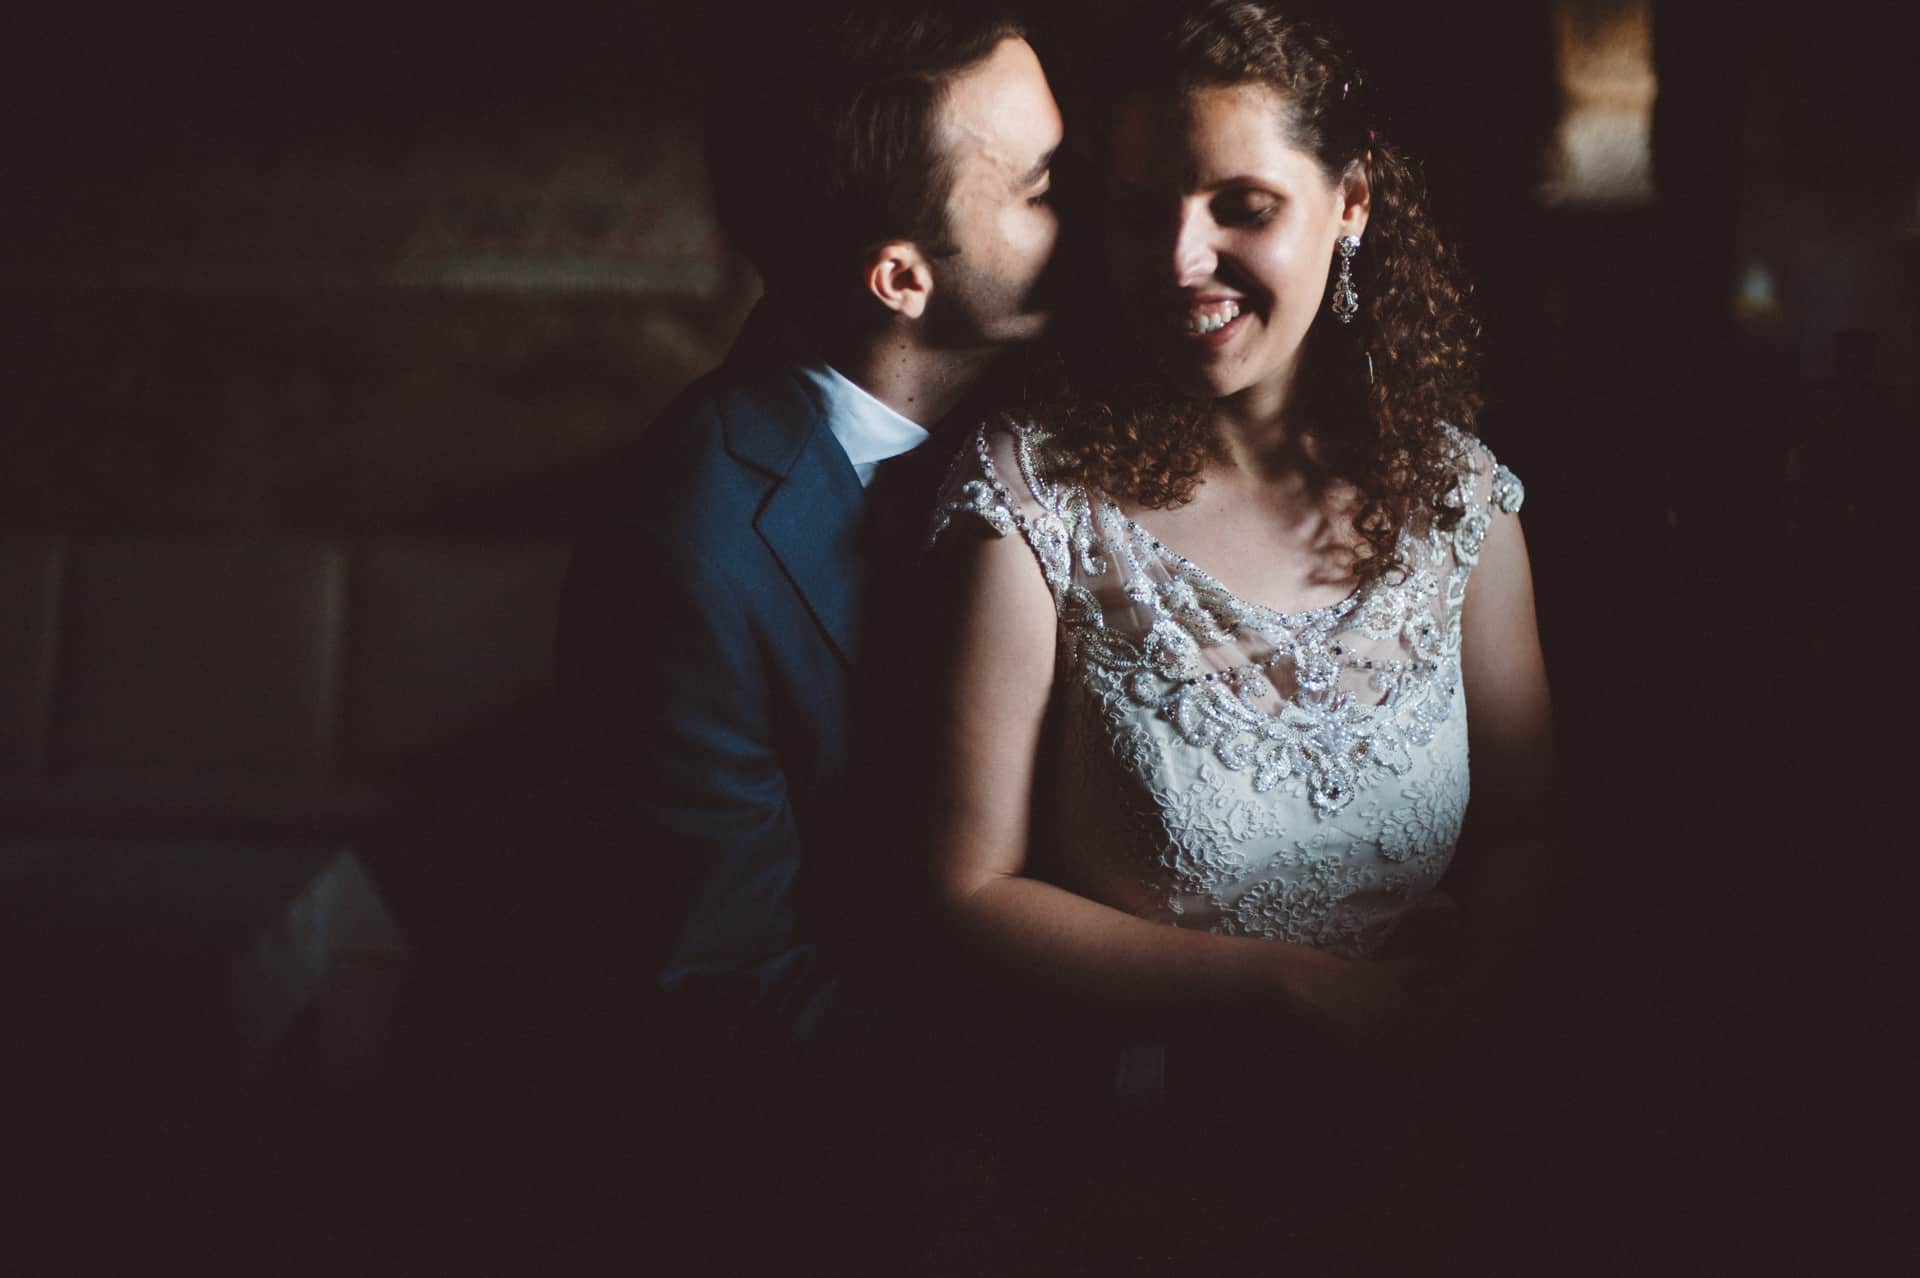 Best wedding images of the year (188 of 316)